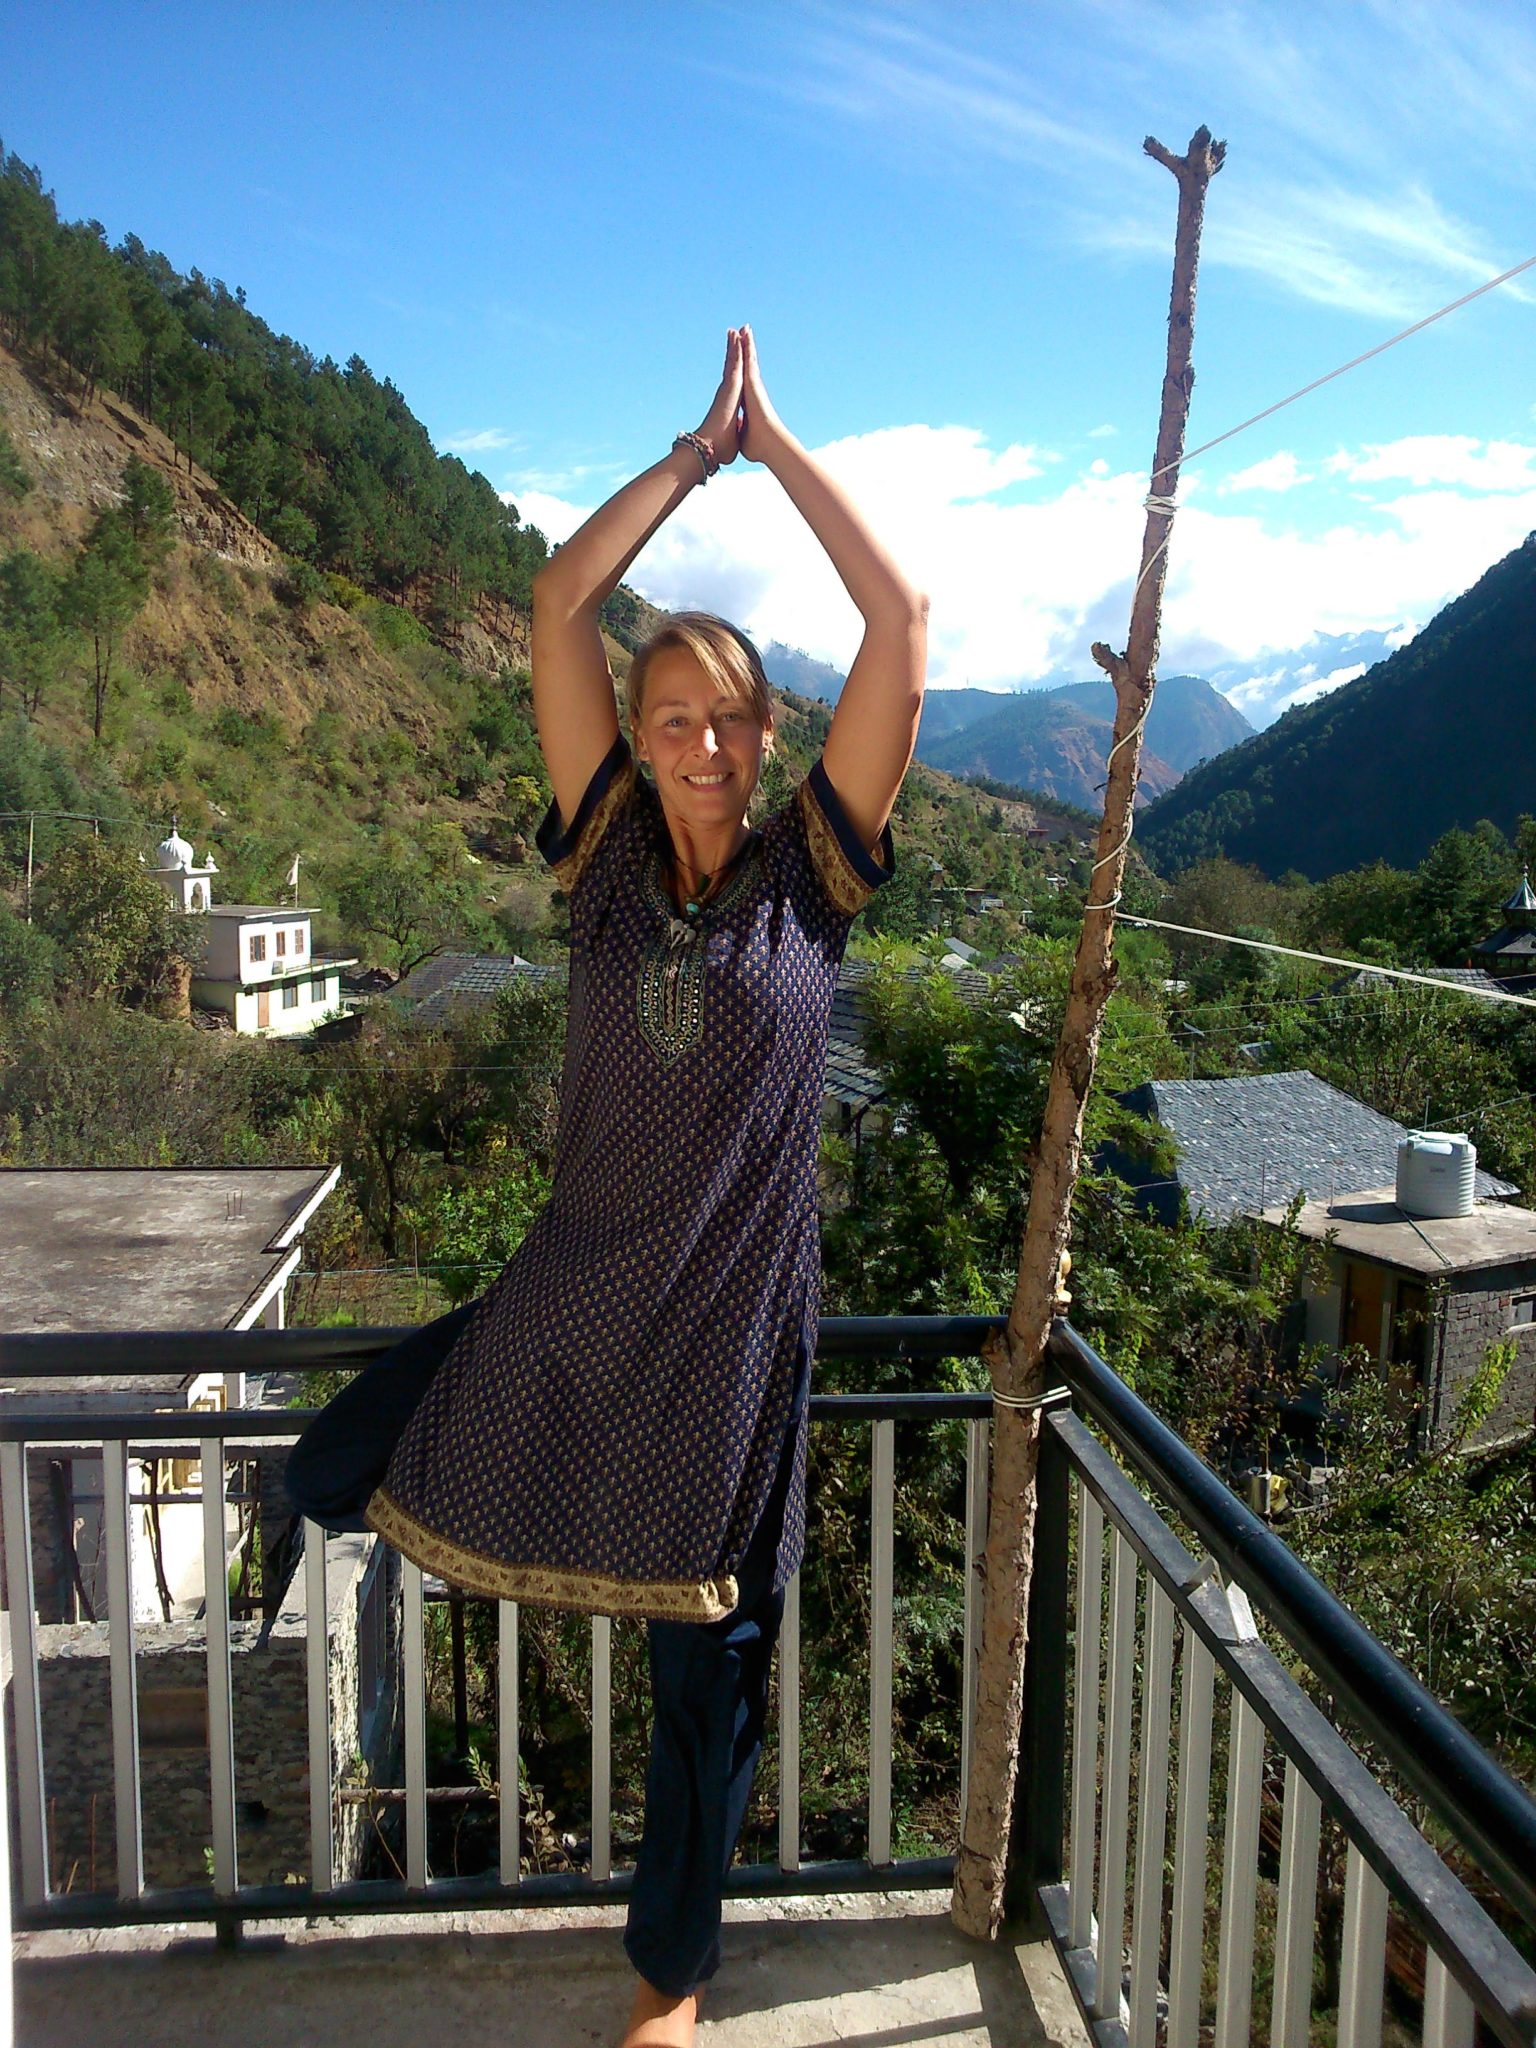 Jez Culley doing yoga in front of some mountains